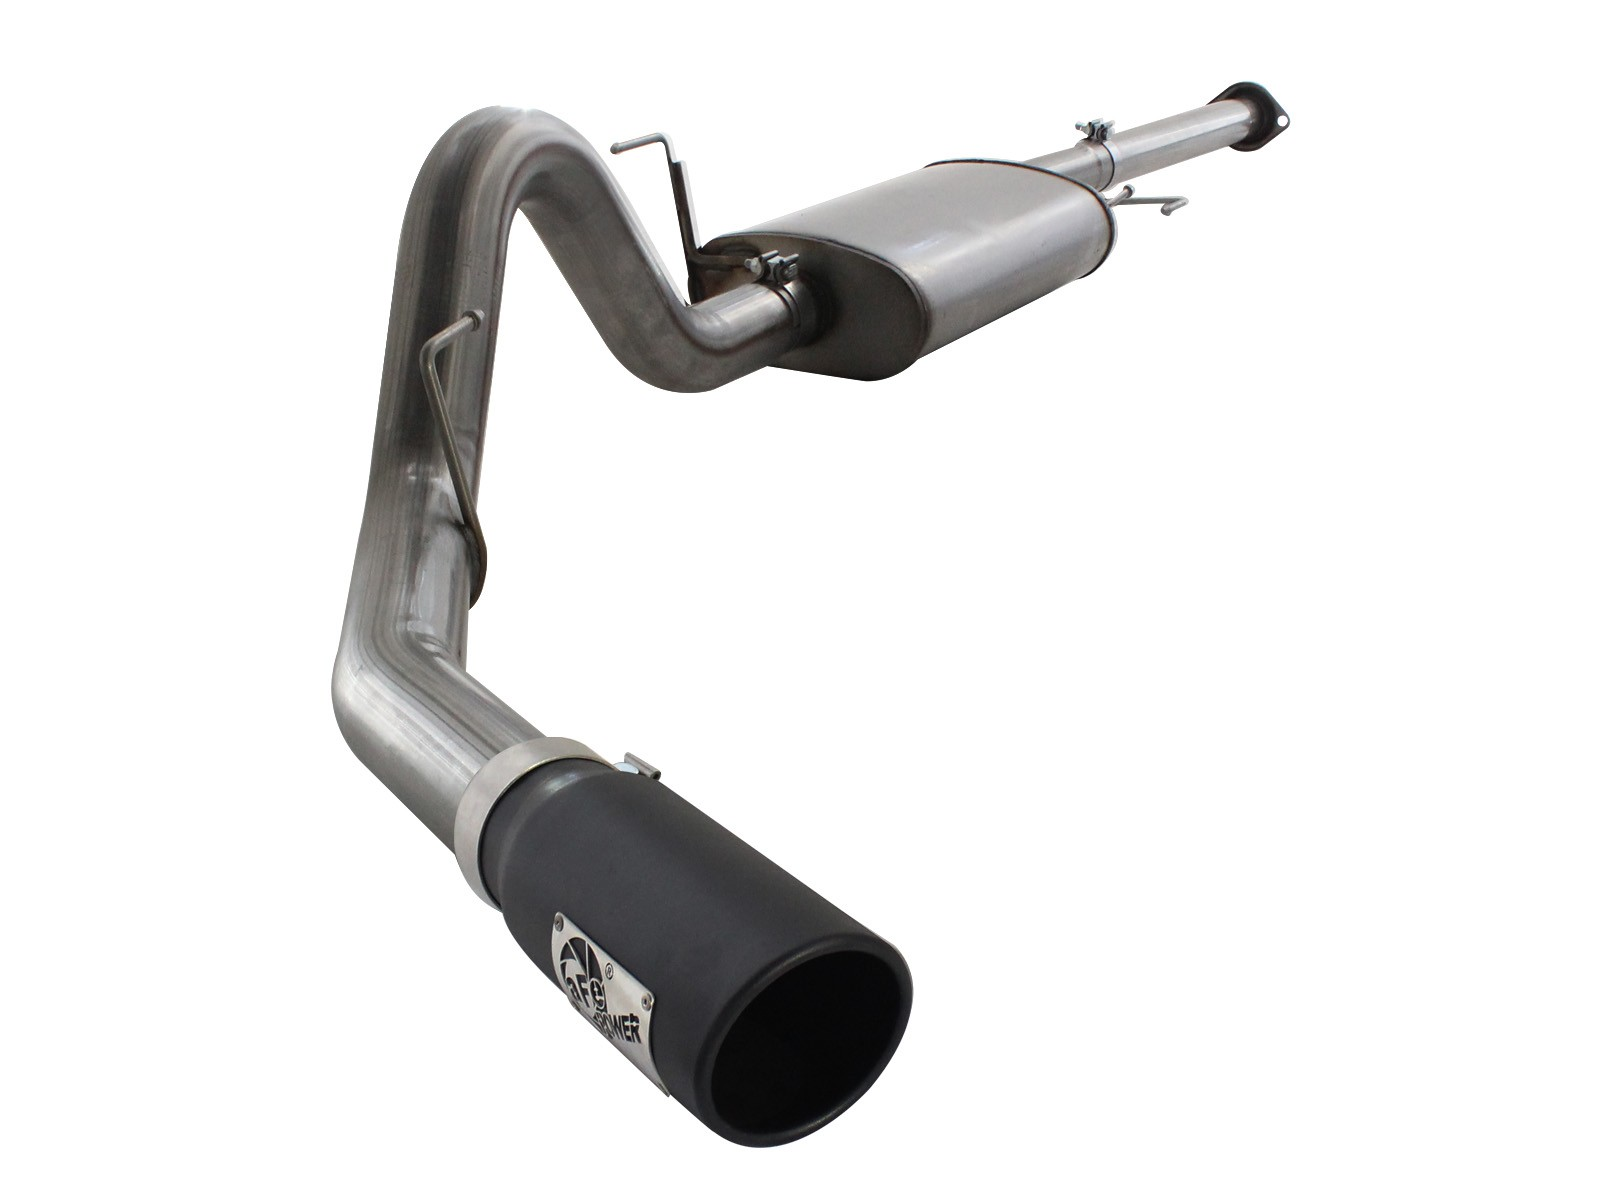 "aFe POWER 49-43038-B MACH Force-Xp 3"" to 3-1/2"" 409 Stainless Steel Cat-Back Exhaust System"